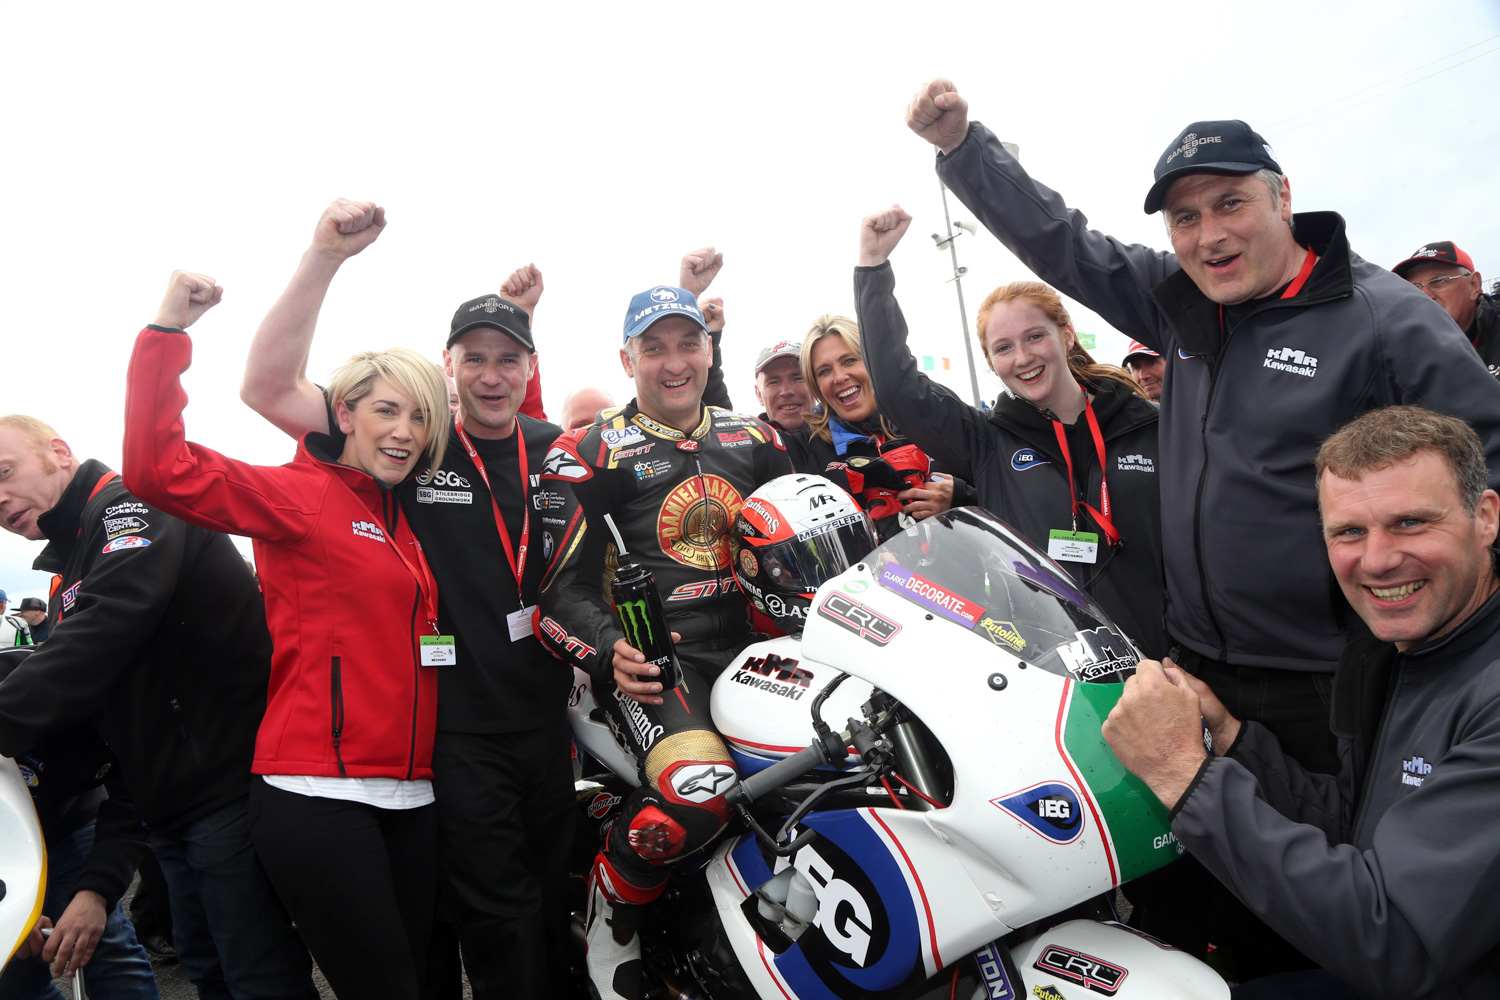 [Road Racing] TT 2017 - Page 3 Saturday-supertwin-race-10